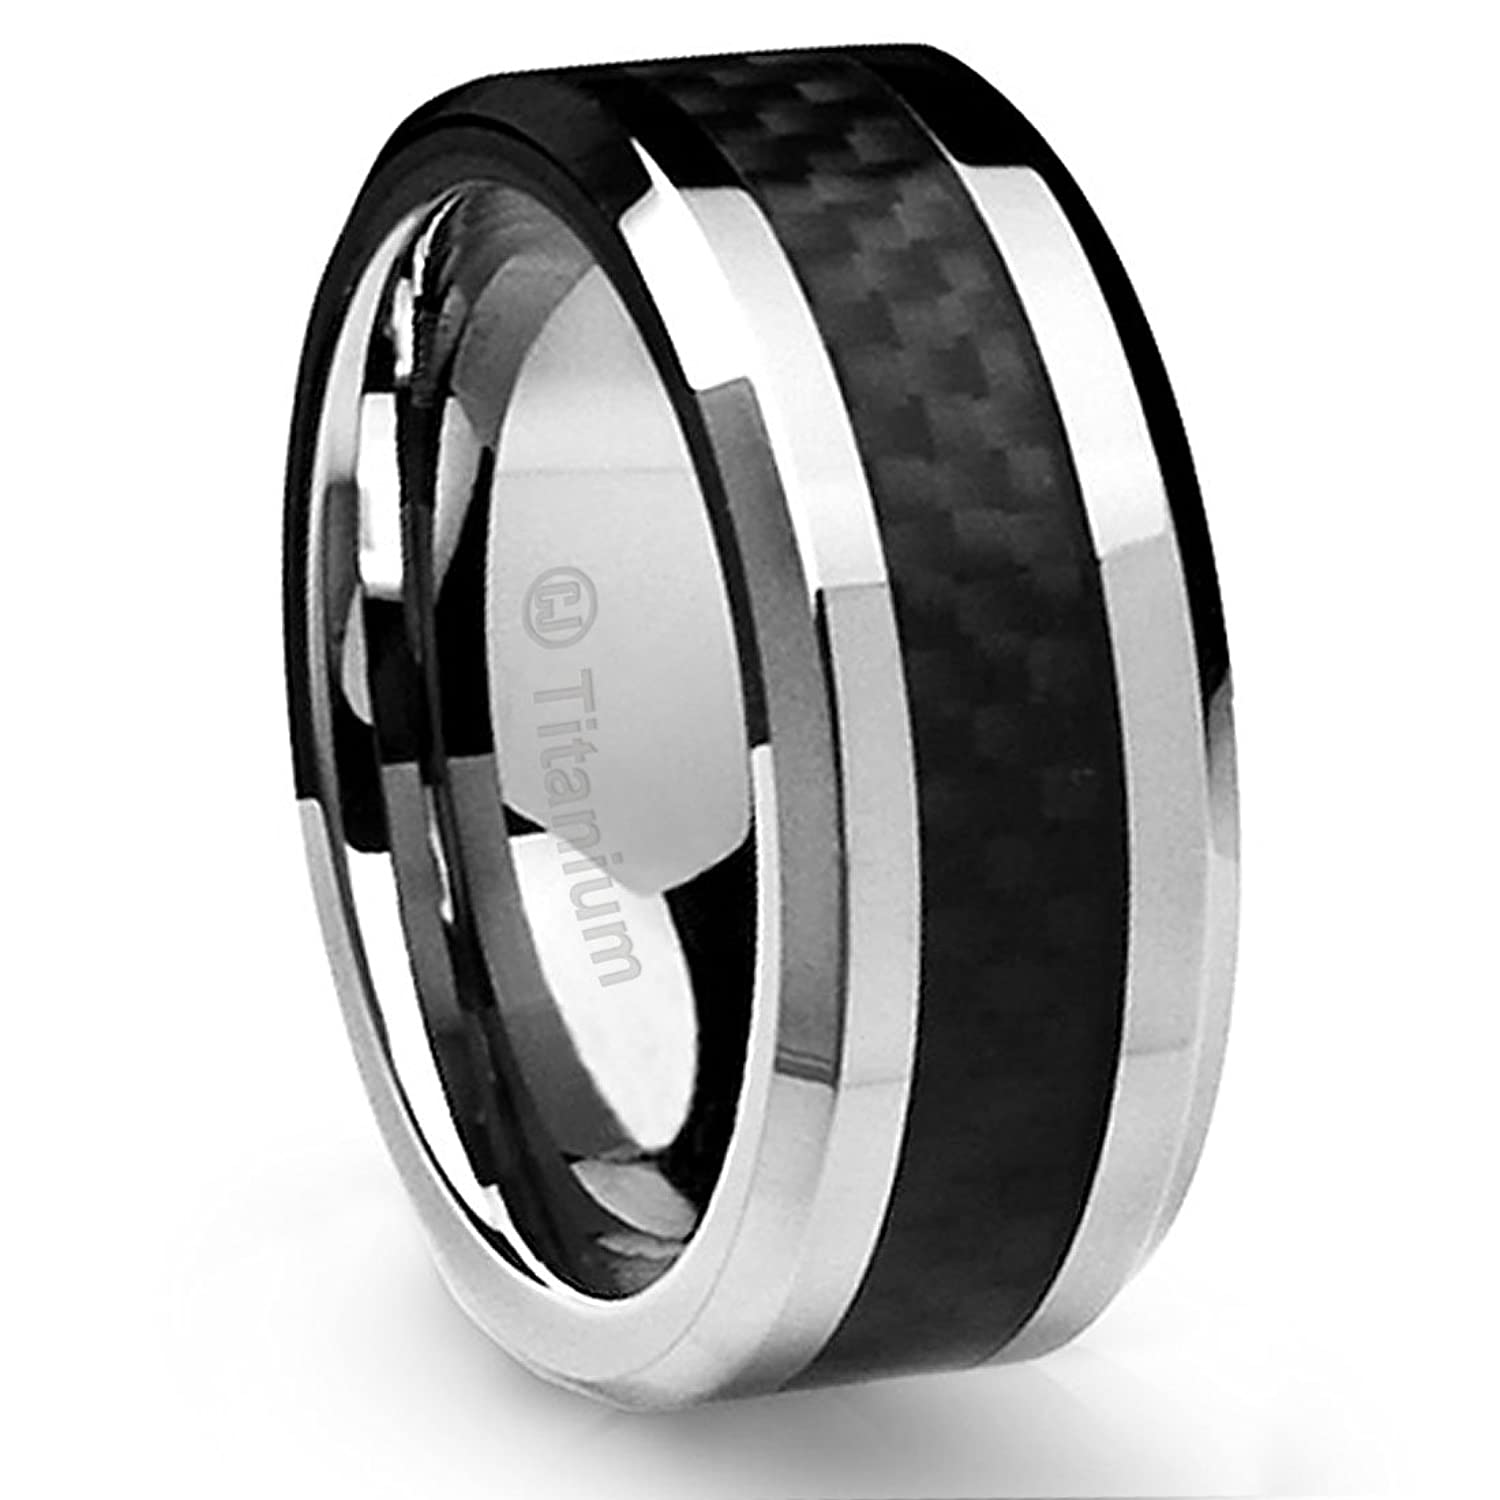 tungsten carbon wedding band ring rings co amazon mens dp black blue celtic uk jewellery dragon silvering carbide fibre queenwish